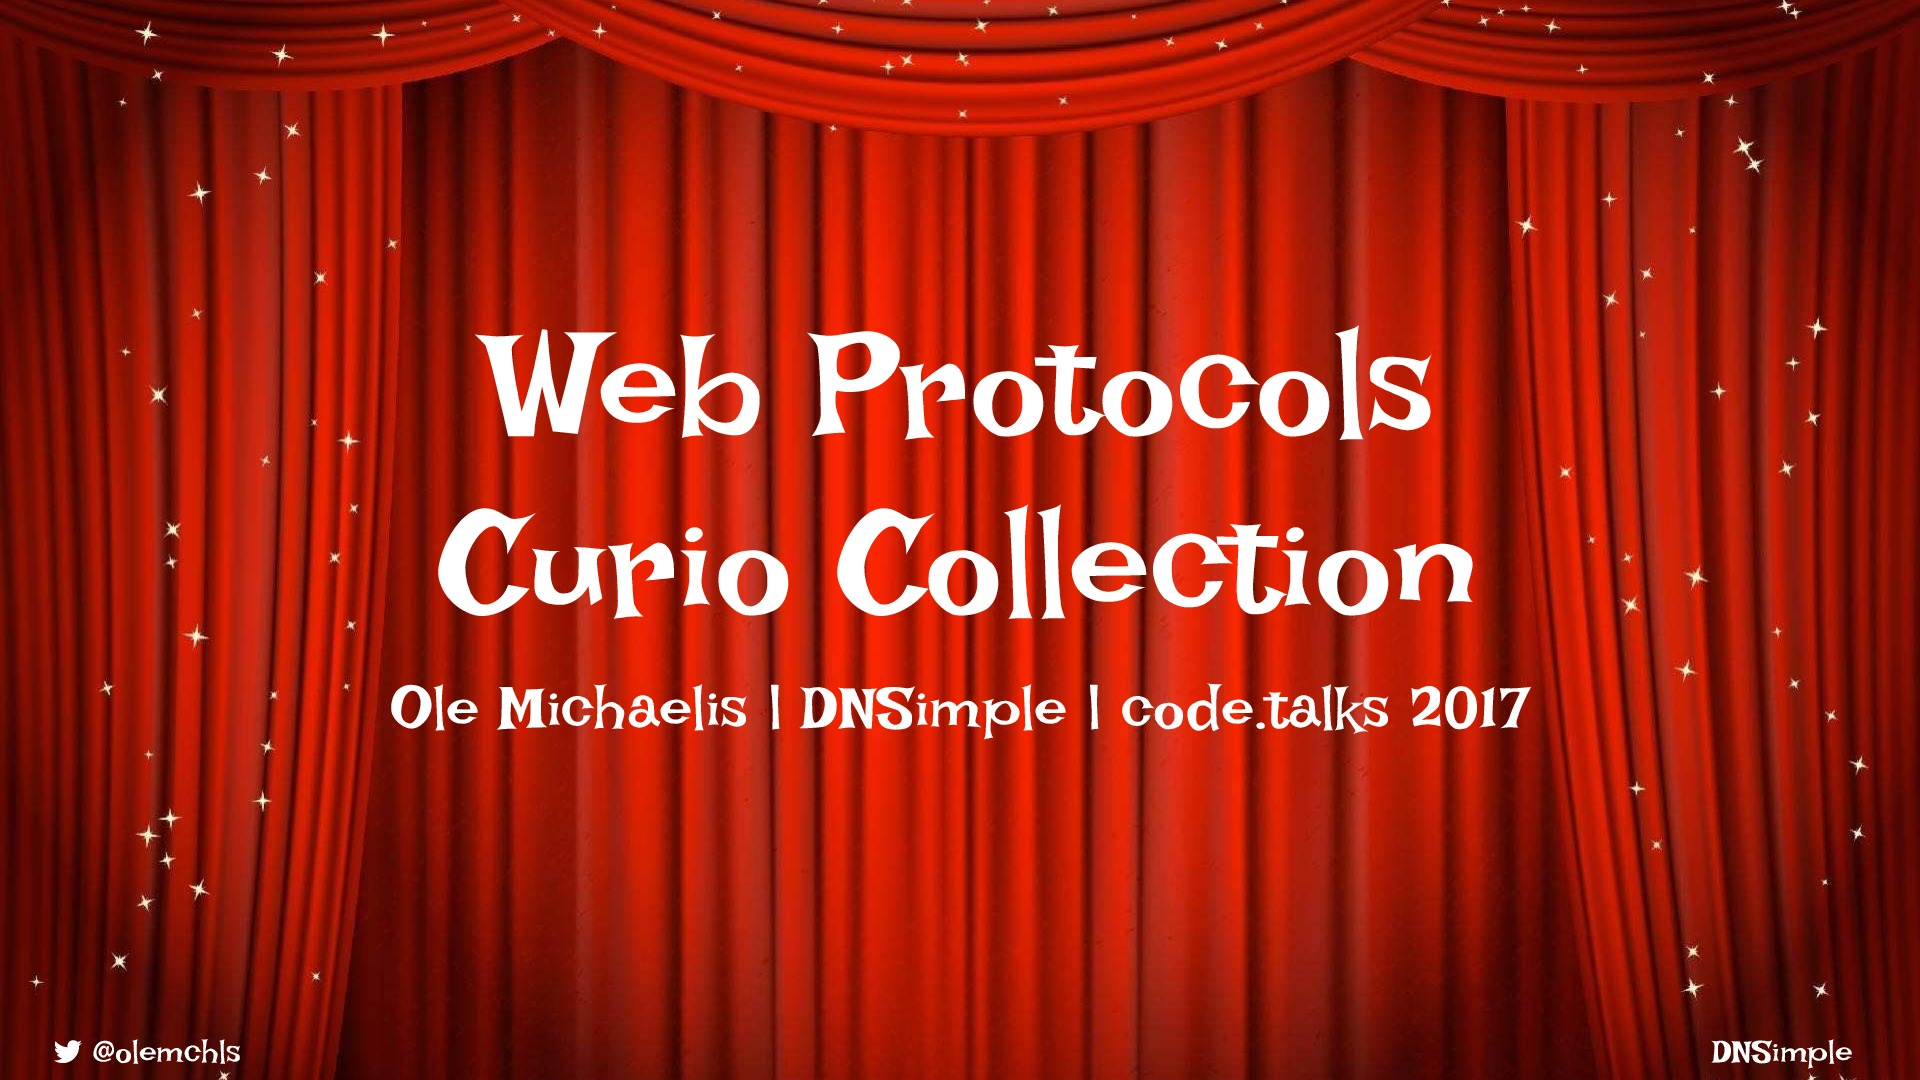 Curio Collection of Web Protocols